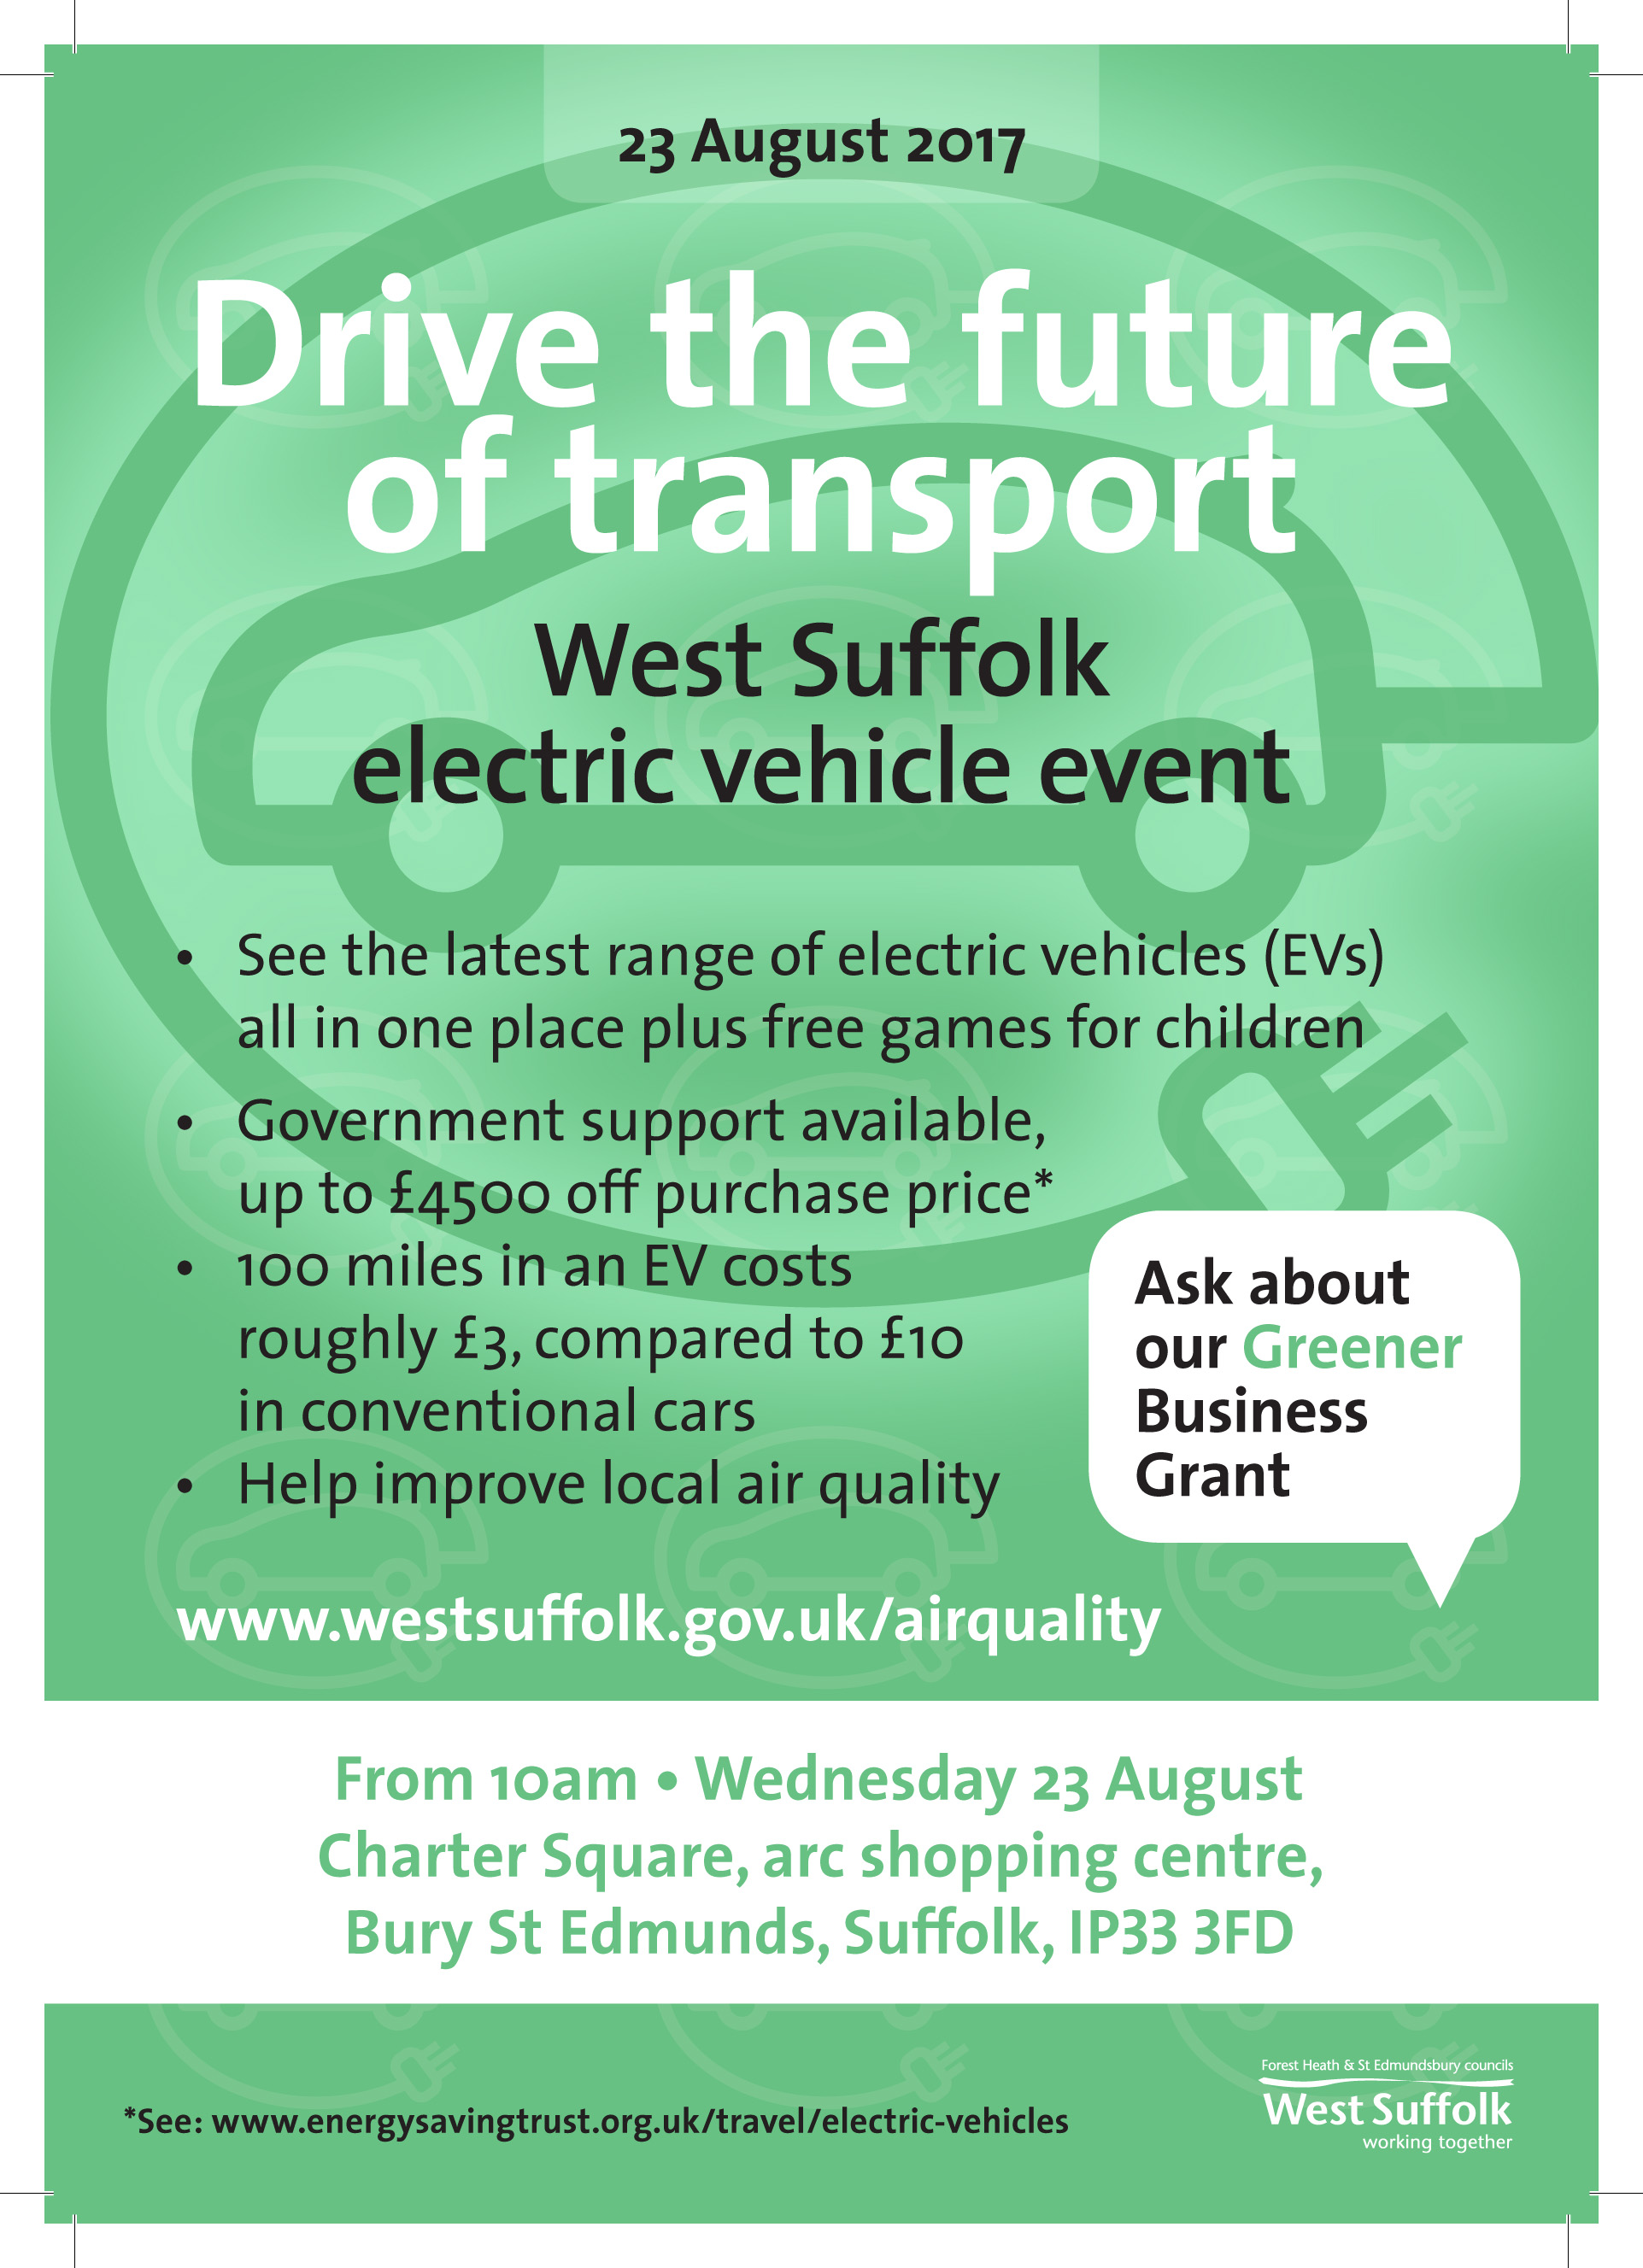 flyer for electric vehicle event 2017